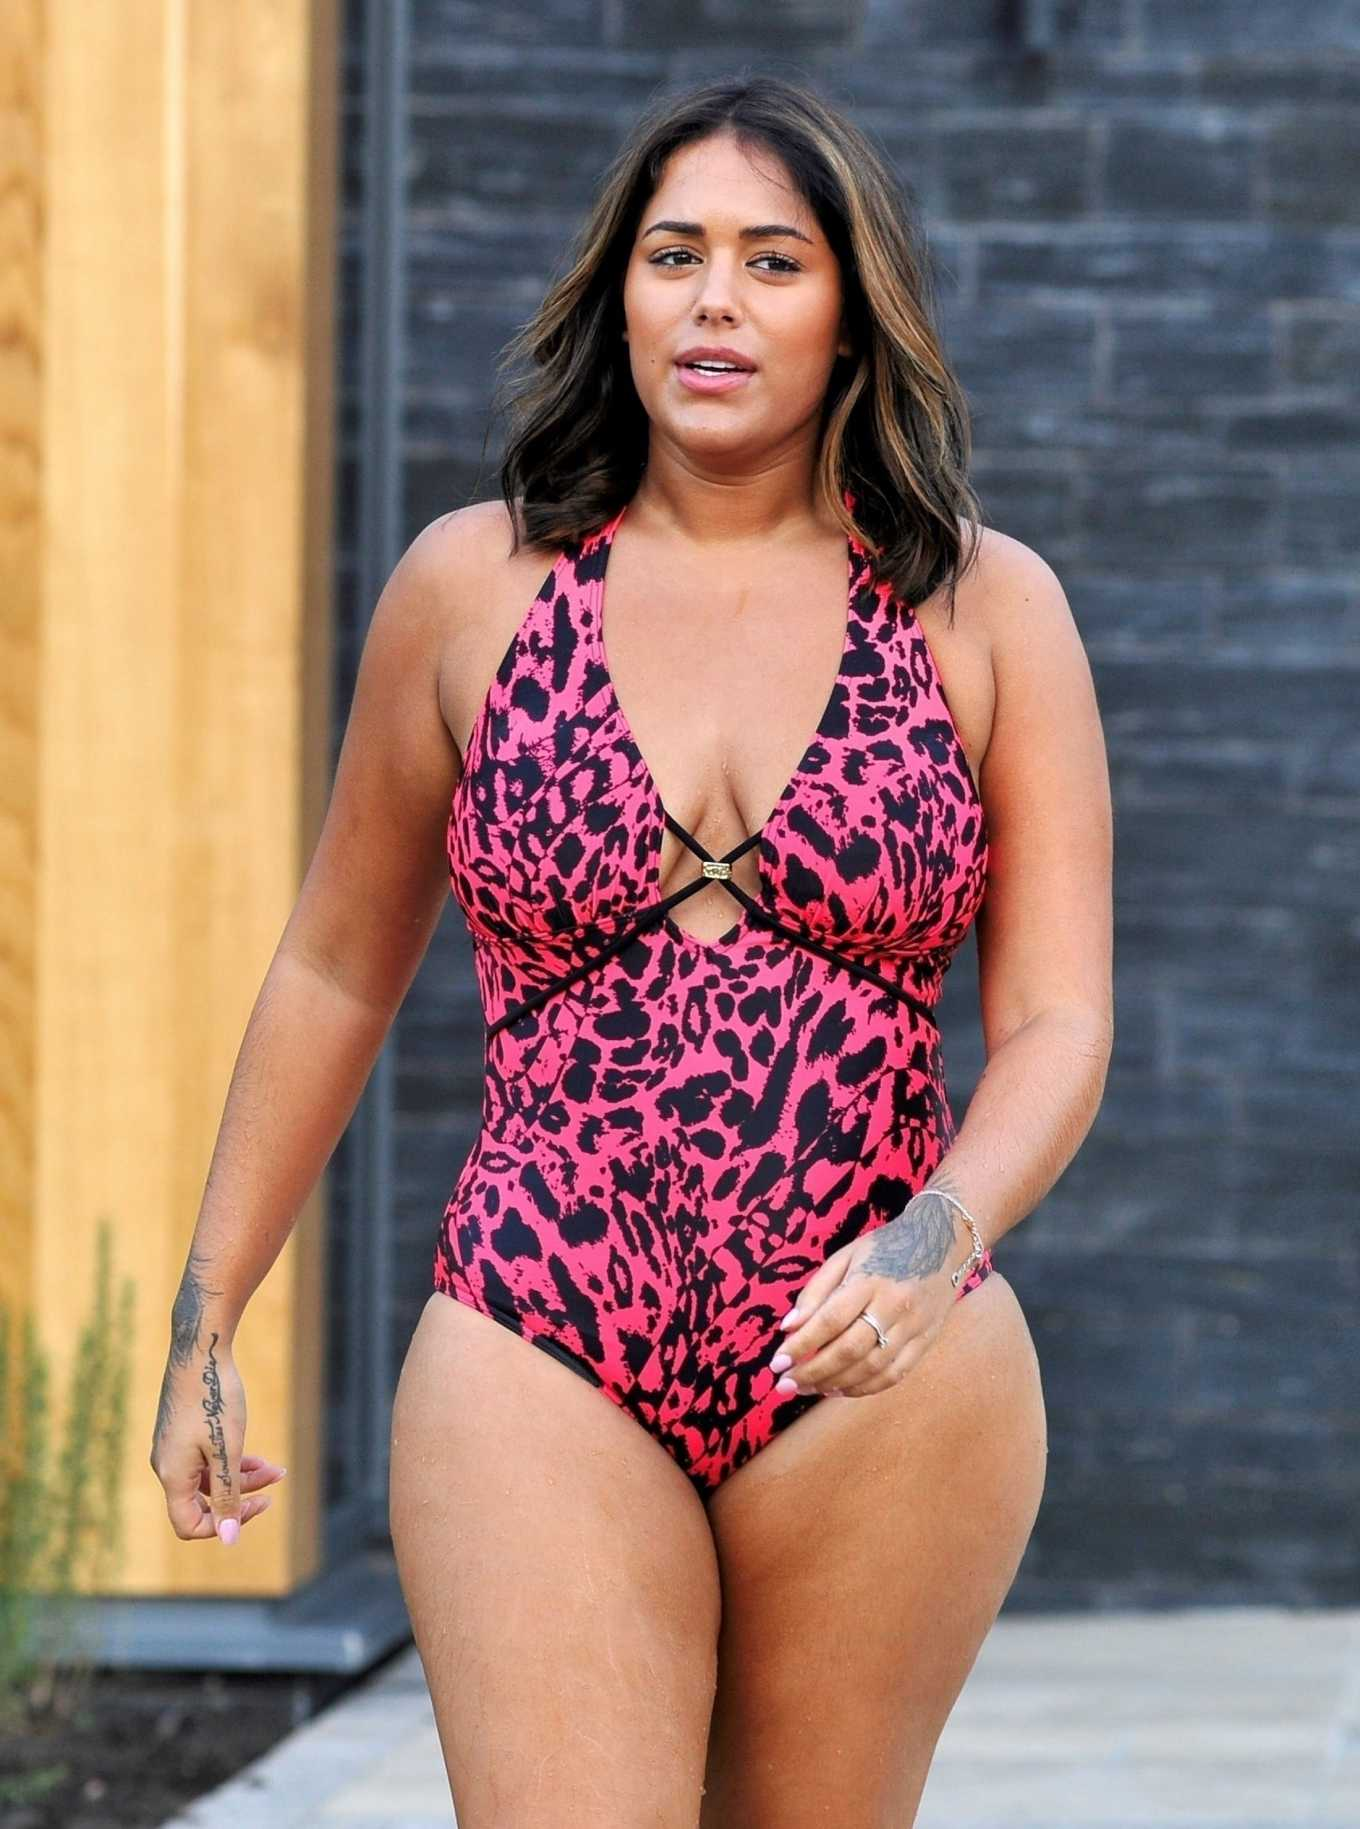 Malin Andersson in Swimsuit at Carden Park Spa in Chester